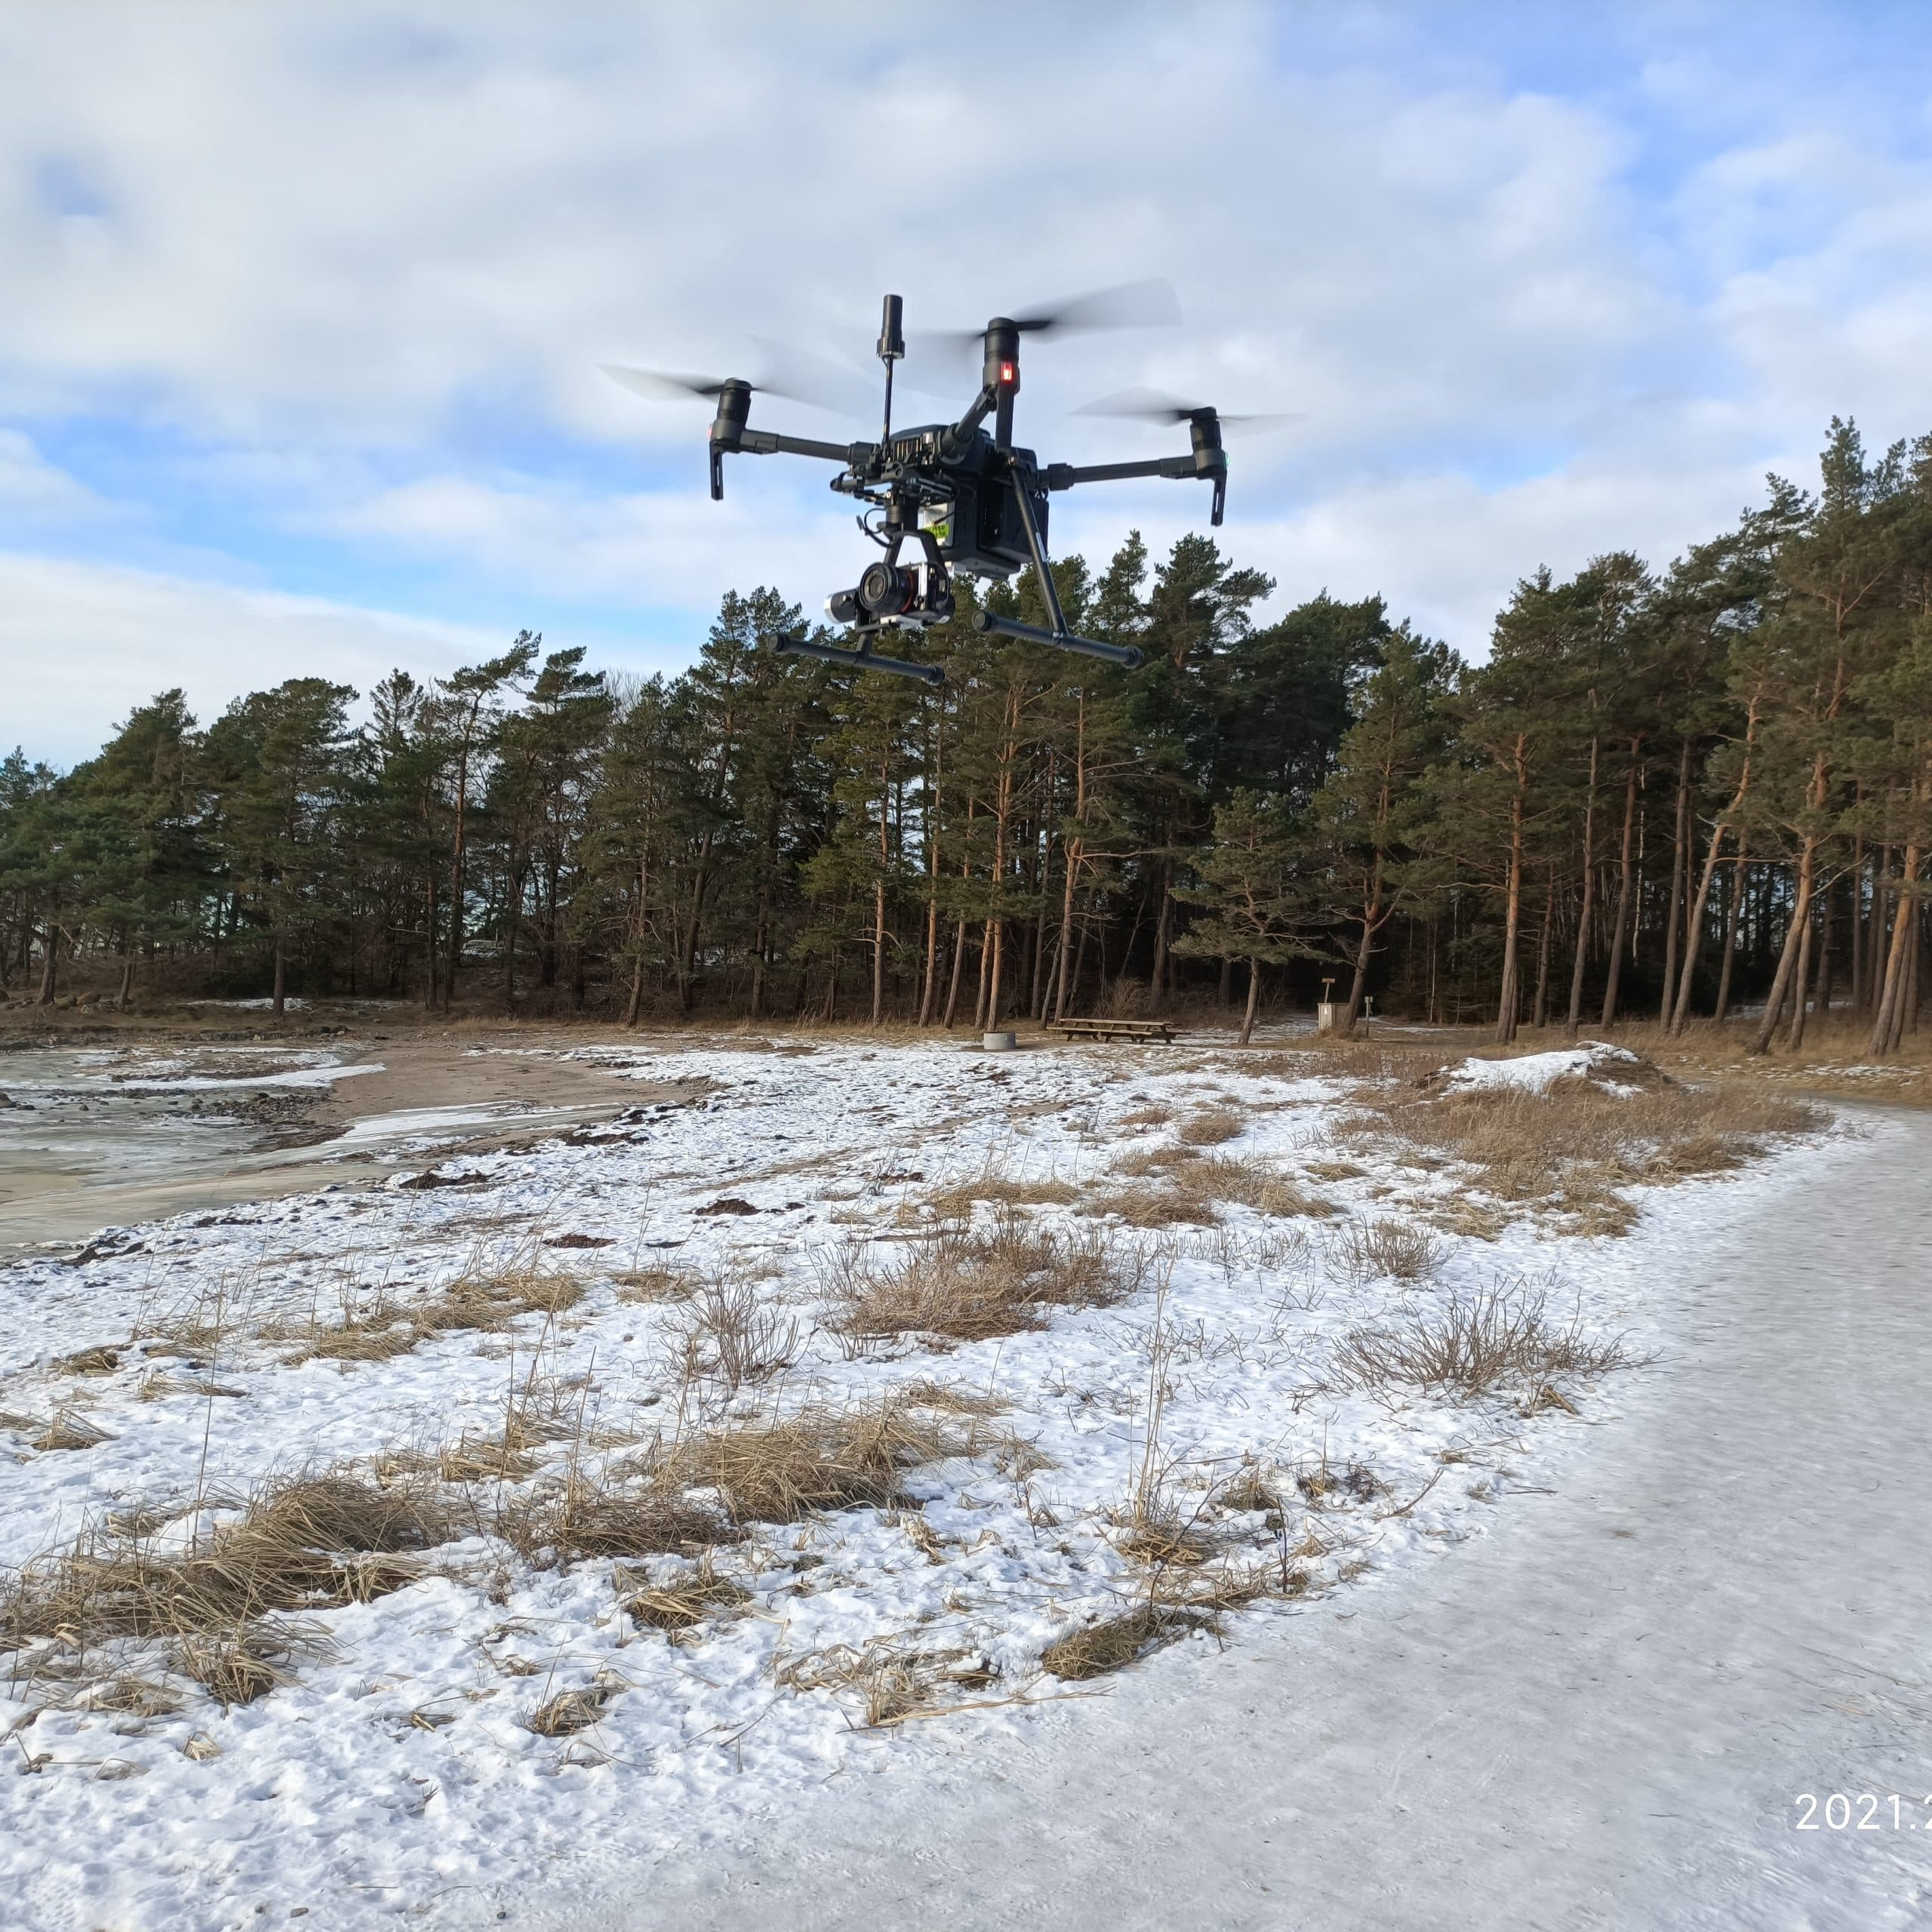 SeaBee drone taking off to capture images of Danmarkbukta. NIVA 2021.